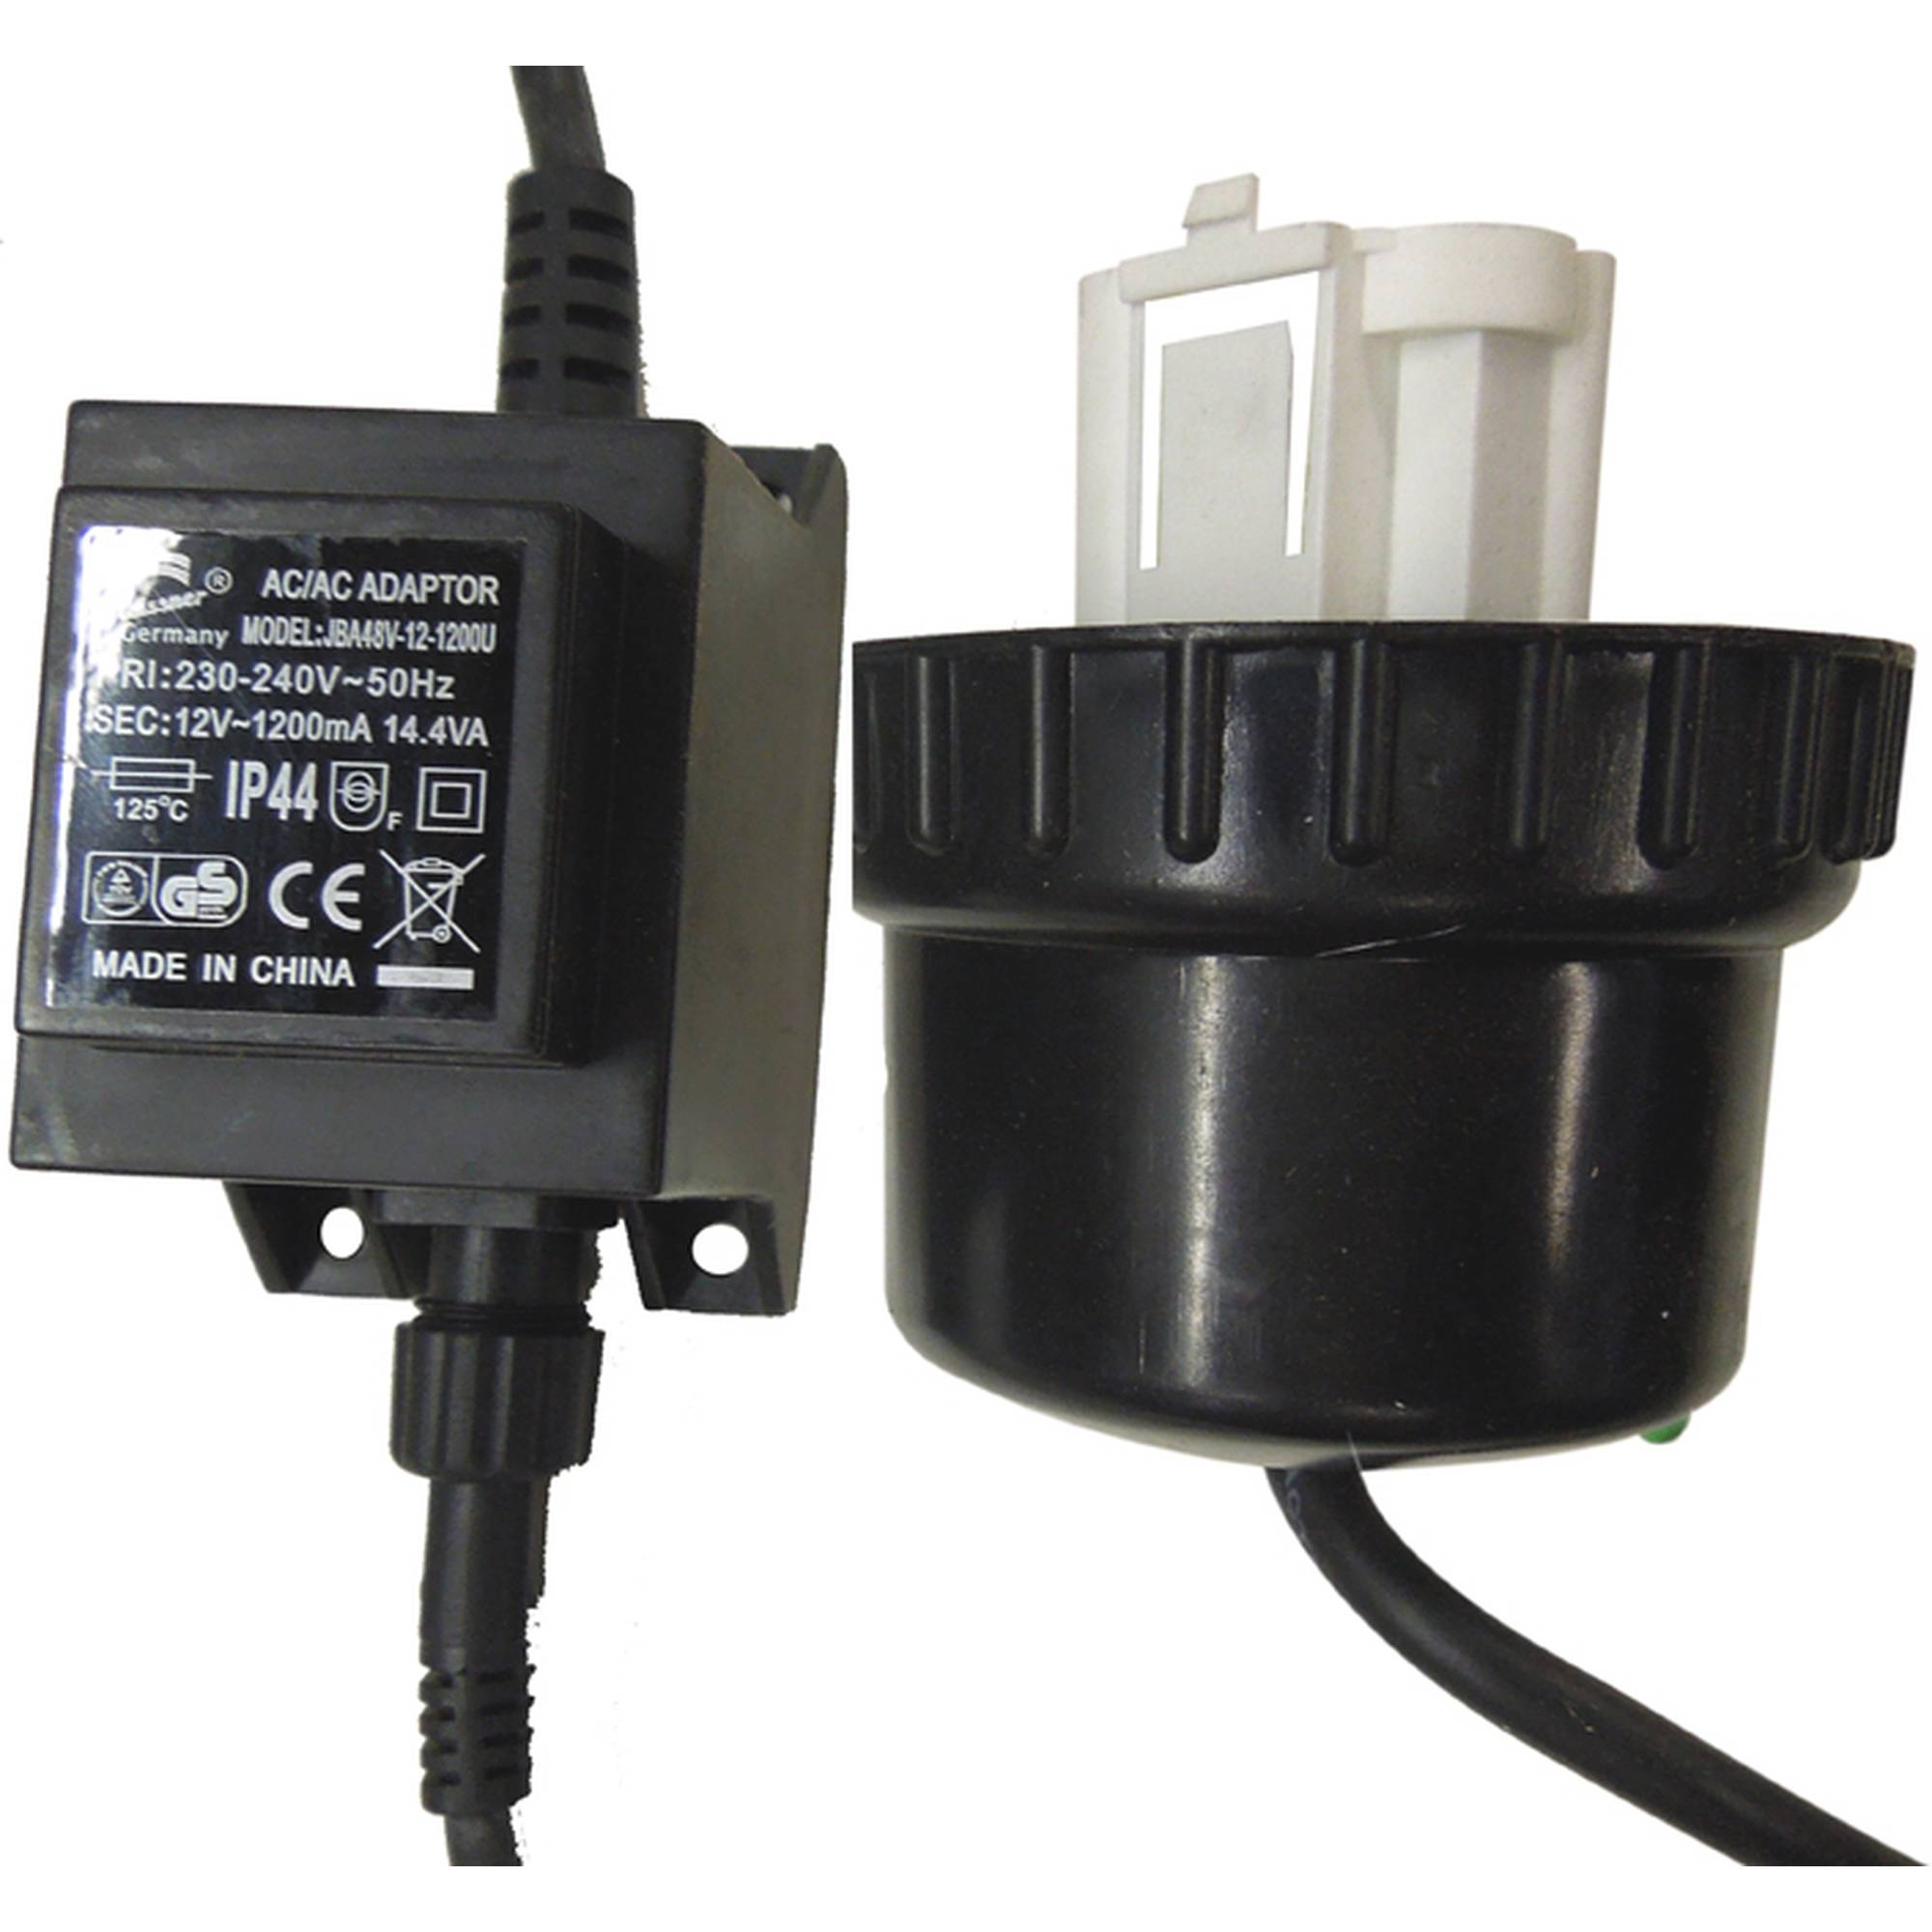 Cover + Cable + Ballast FPU10000-00